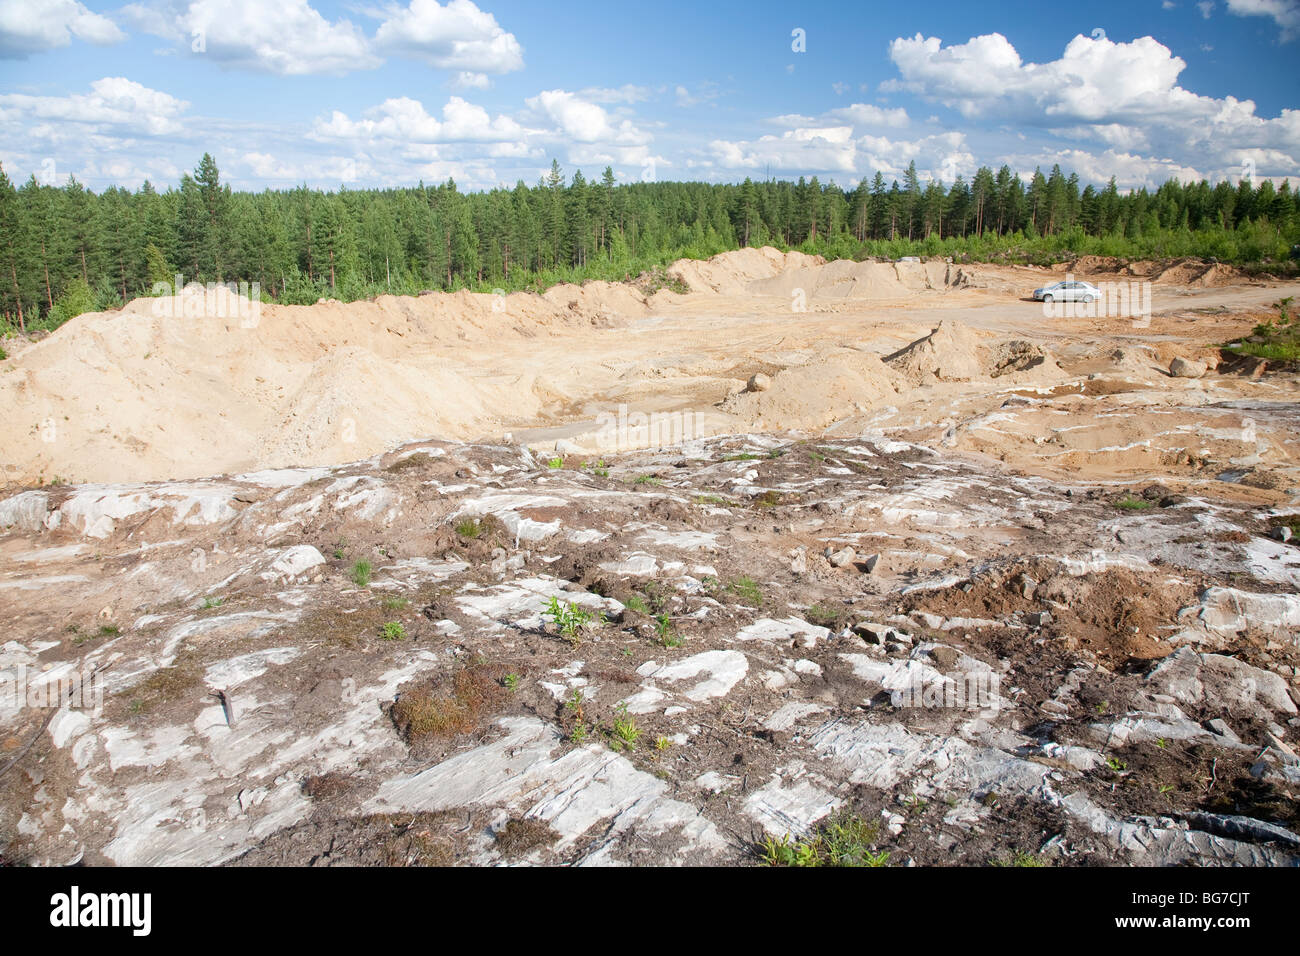 Exposed bedrock at a new rock quarry for digging for sand and crushing the bedrock to gravel , Finland - Stock Image